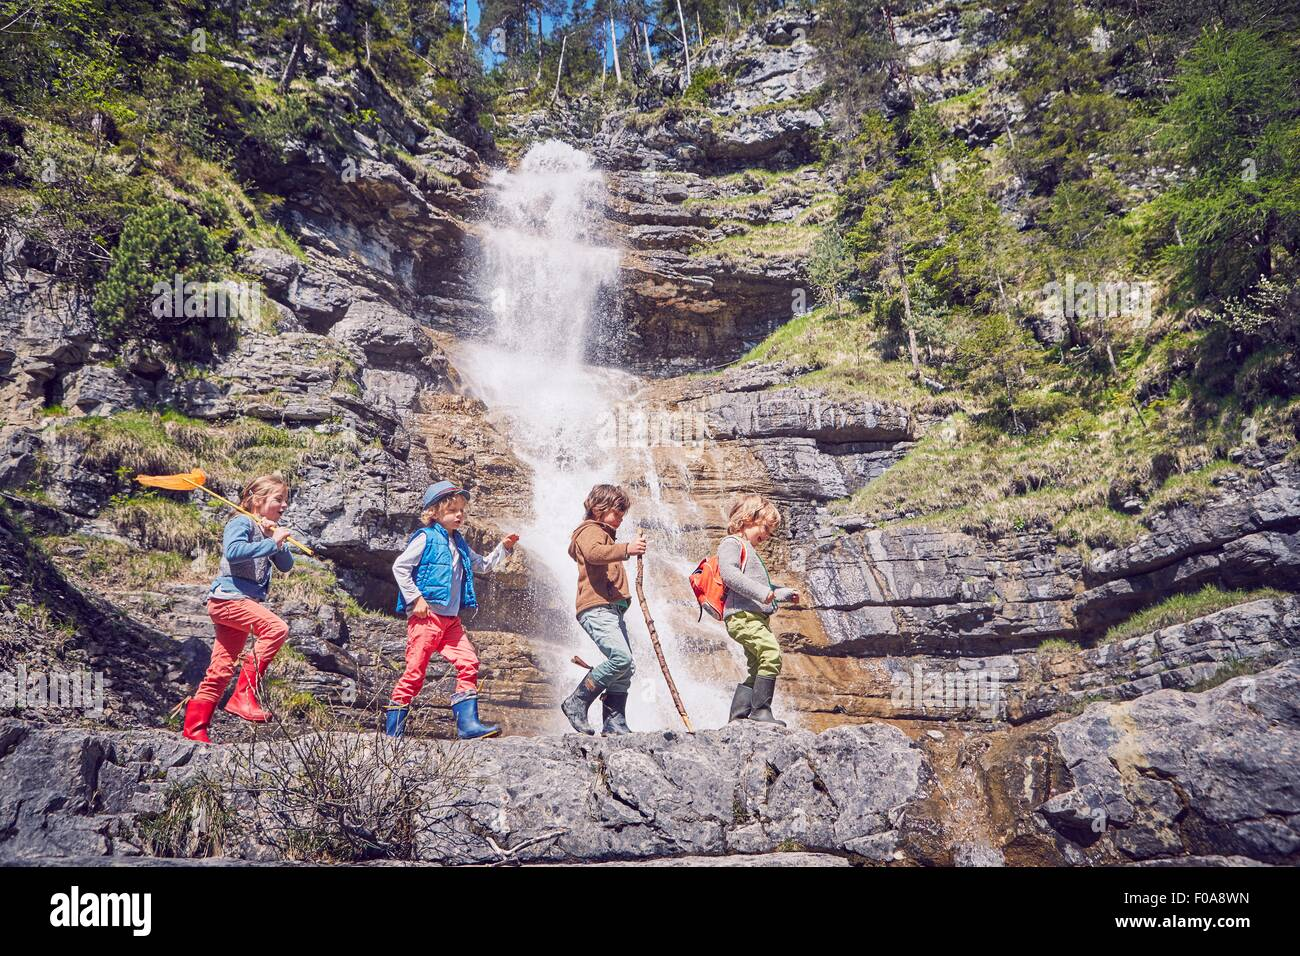 Group of children exploring by waterfall - Stock Image